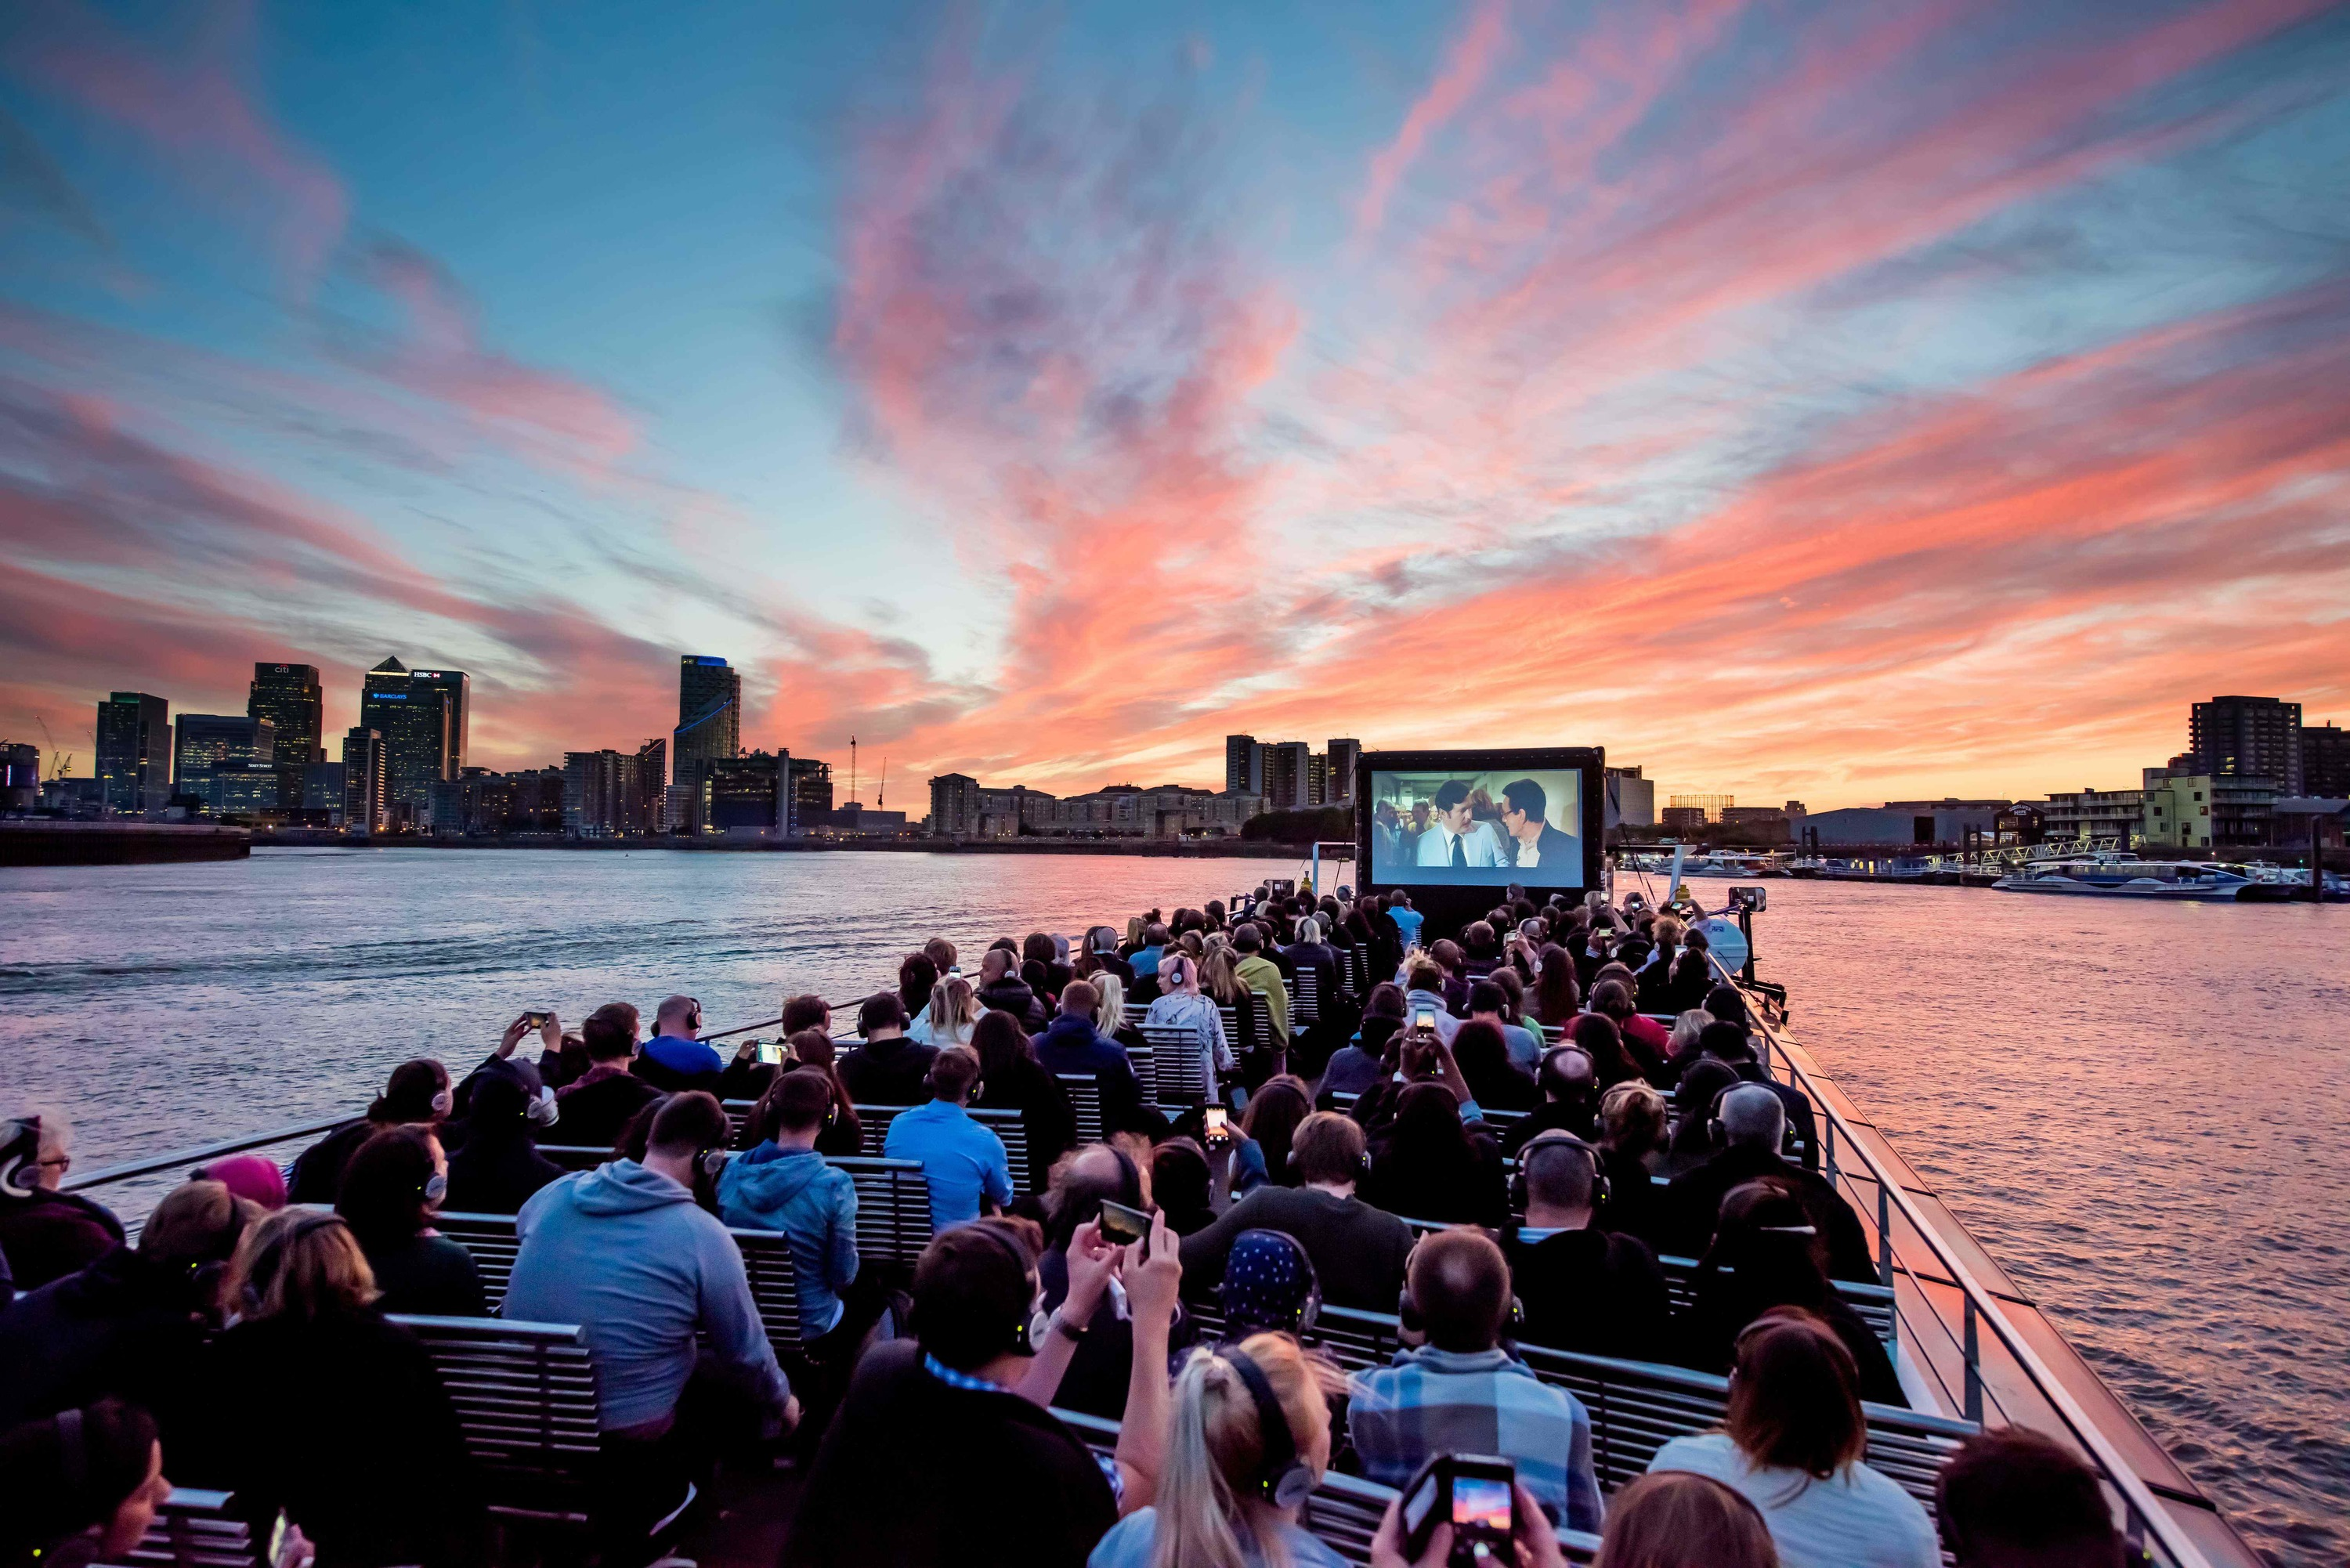 Outdoor cinema in London